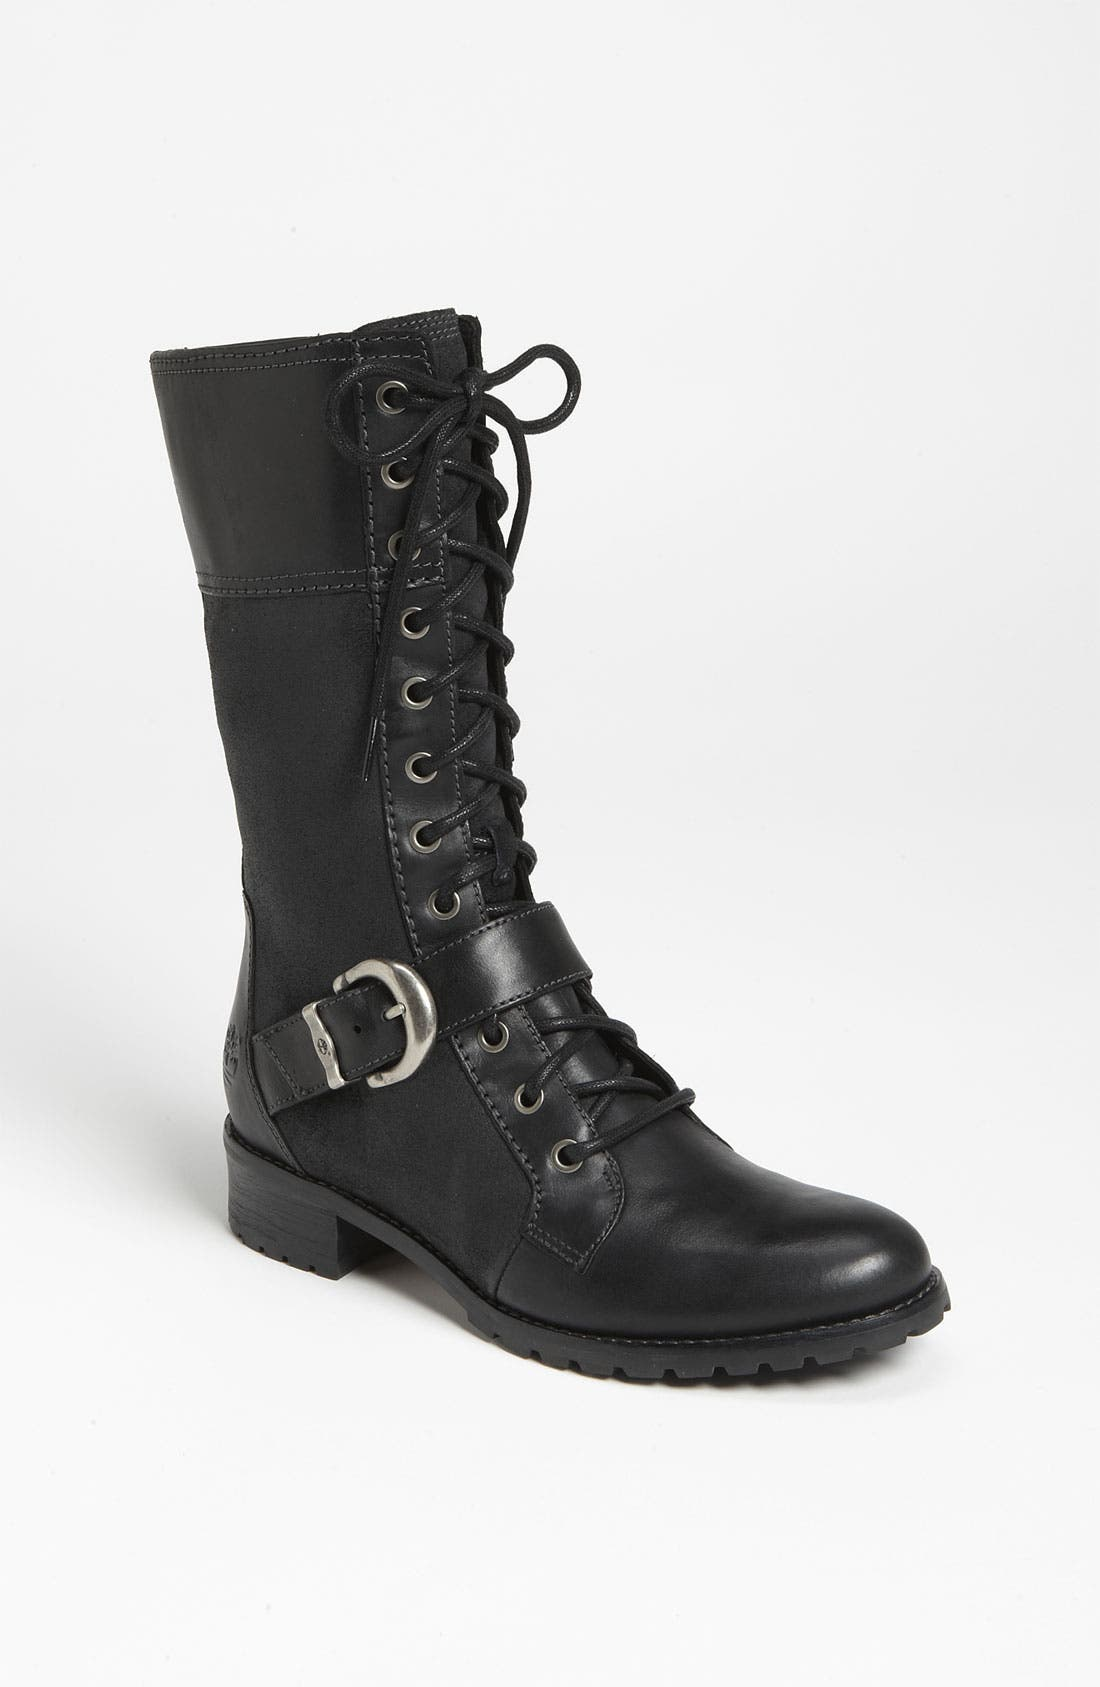 Main Image - TIMBERLAND EARTHKEEPER BETHEL BUCKLE MID LACE BOOT